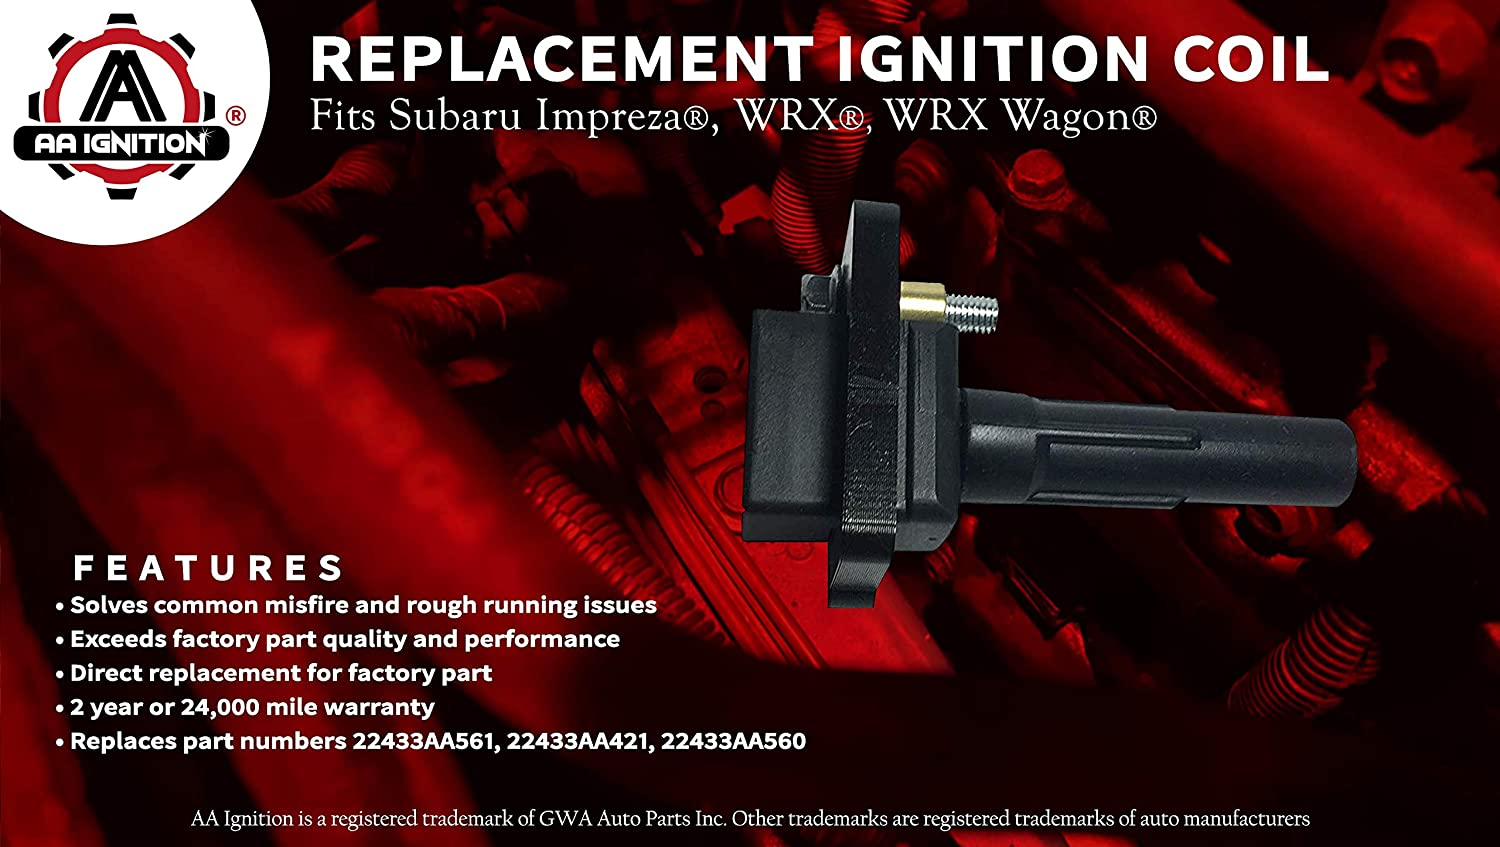 2004 Ignition Coil Pack Set of 4 Fits Subaru Impreza WRX WRX Wagon 2003 Replaces# 22433AA421-2002 2005 models